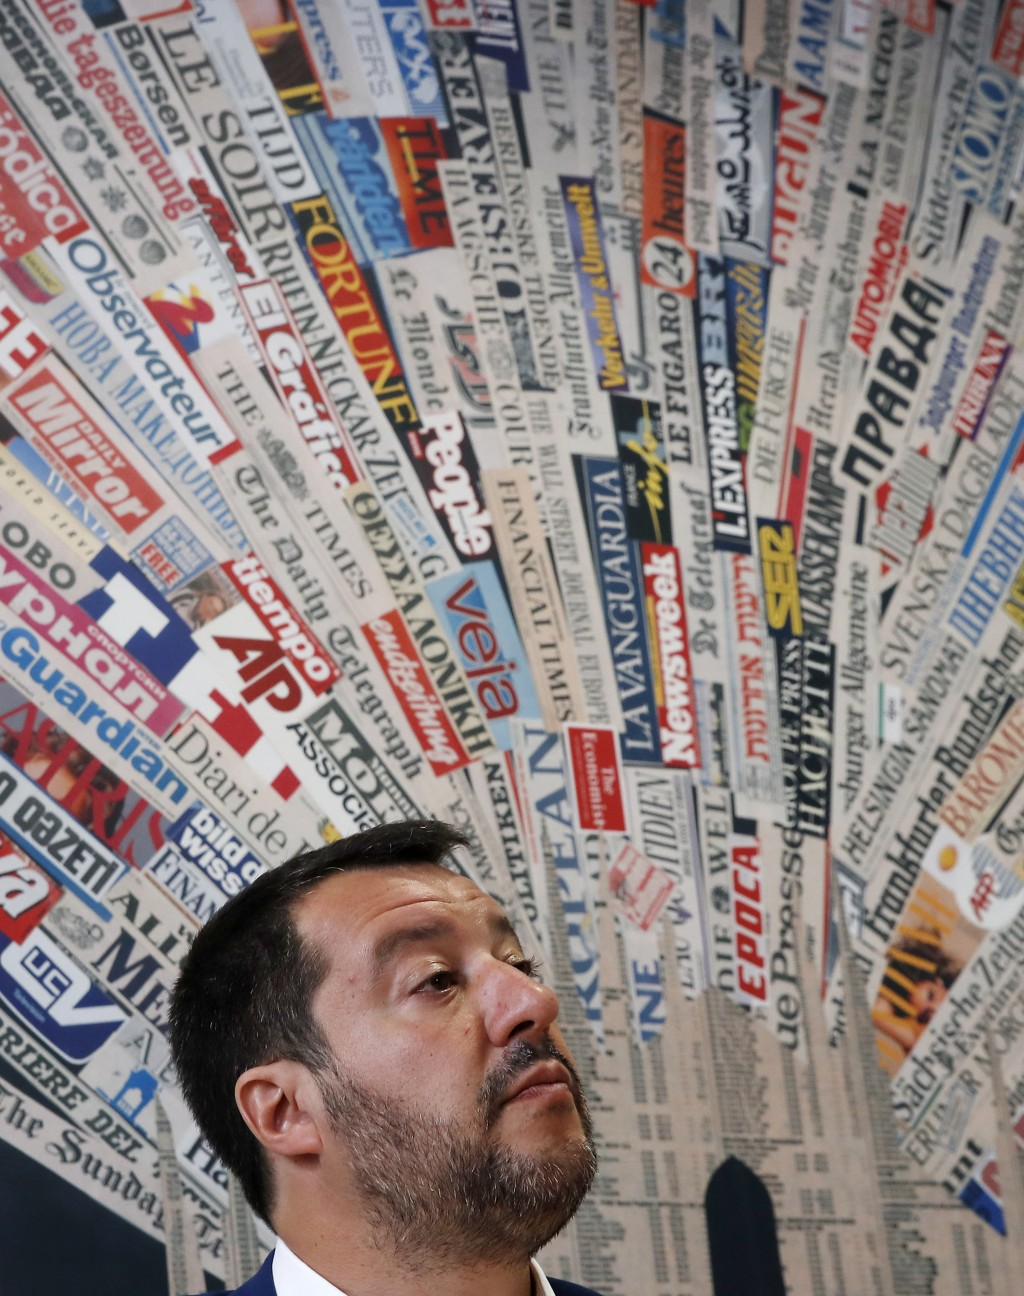 Italian Interior Minister and Deputy-Premier, Matteo Salvini, attends a press conference at the foreign press association in Milan, Italy, Friday, May